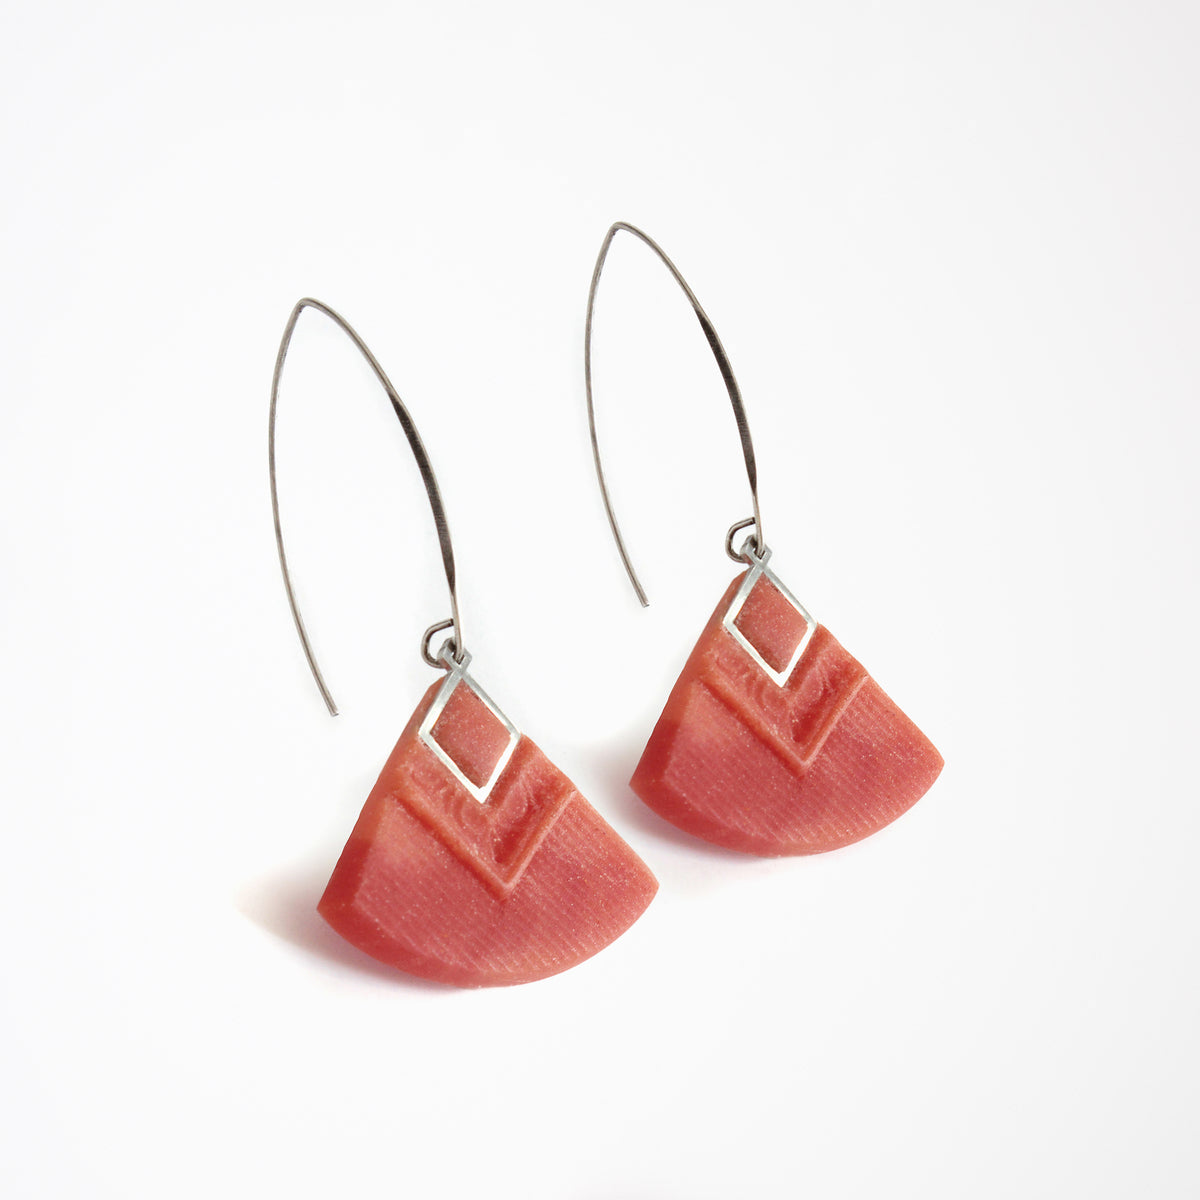 Cléopâtre Earrings in Coral - Handmade in Eco-friendly Resin - Sold by Chic & Basta